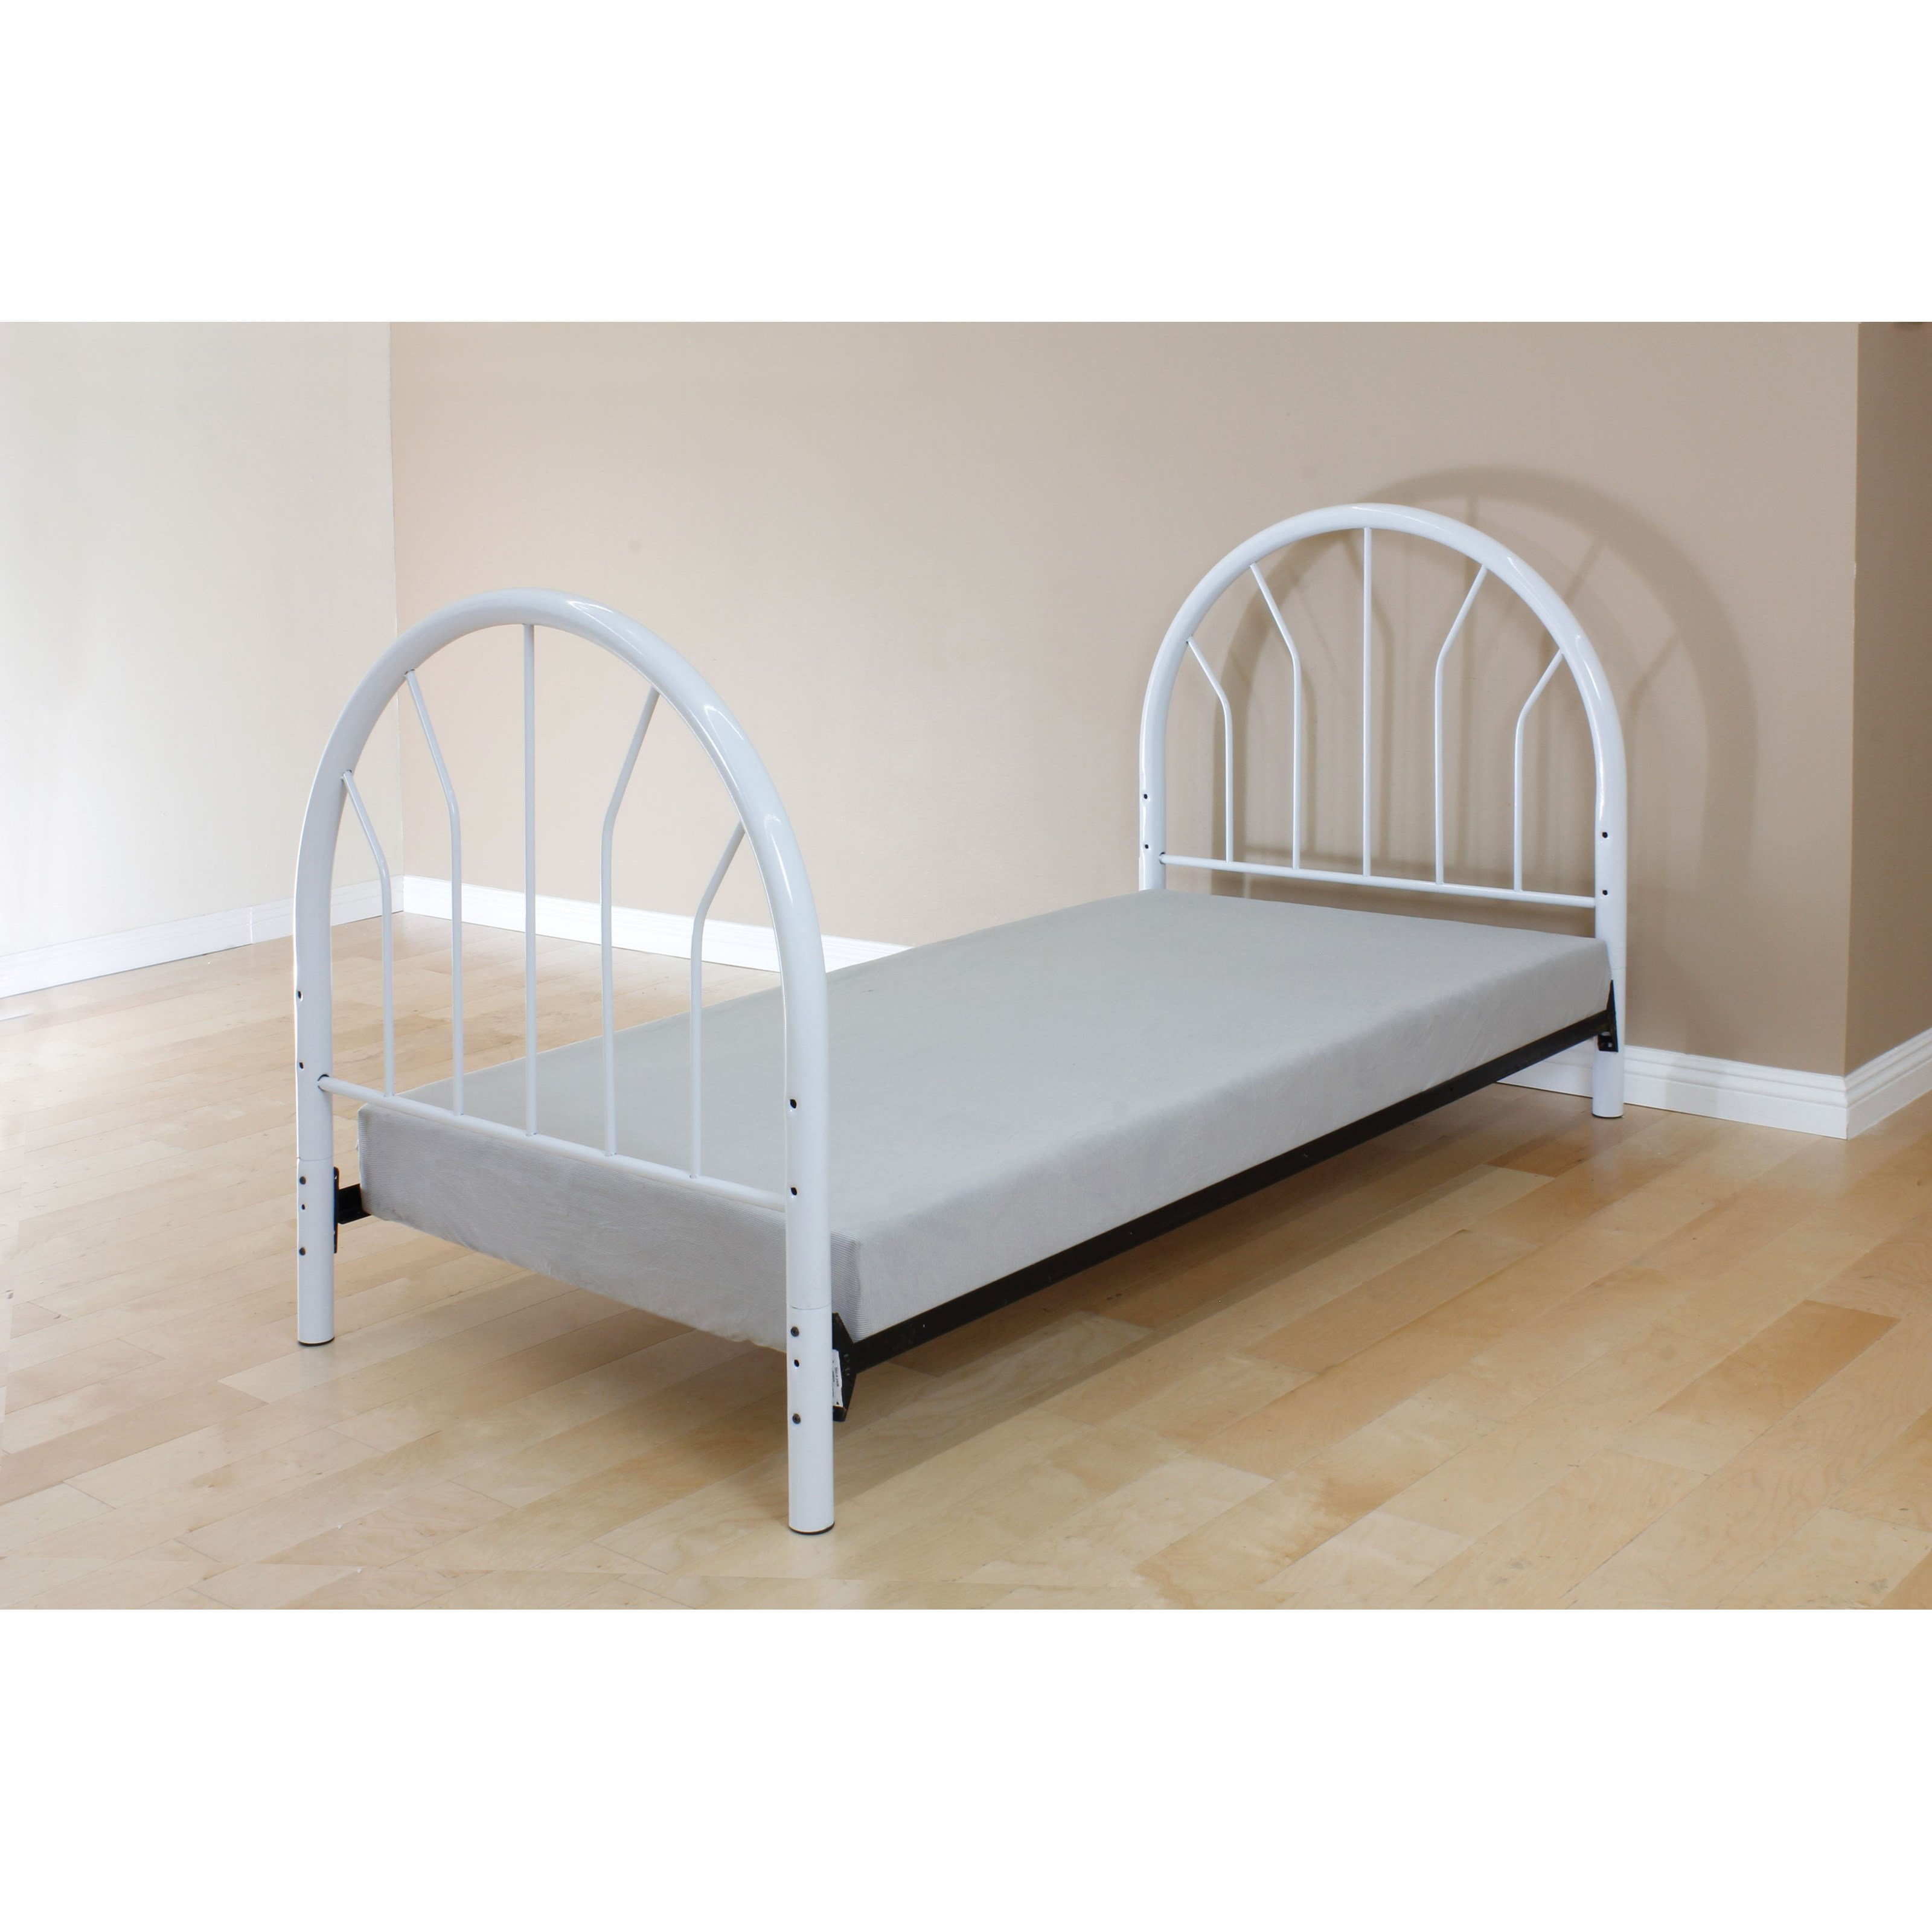 Silhouette Twin Bed (Headboard/Footboard Only) by Acme Furniture at Nassau Furniture and Mattress